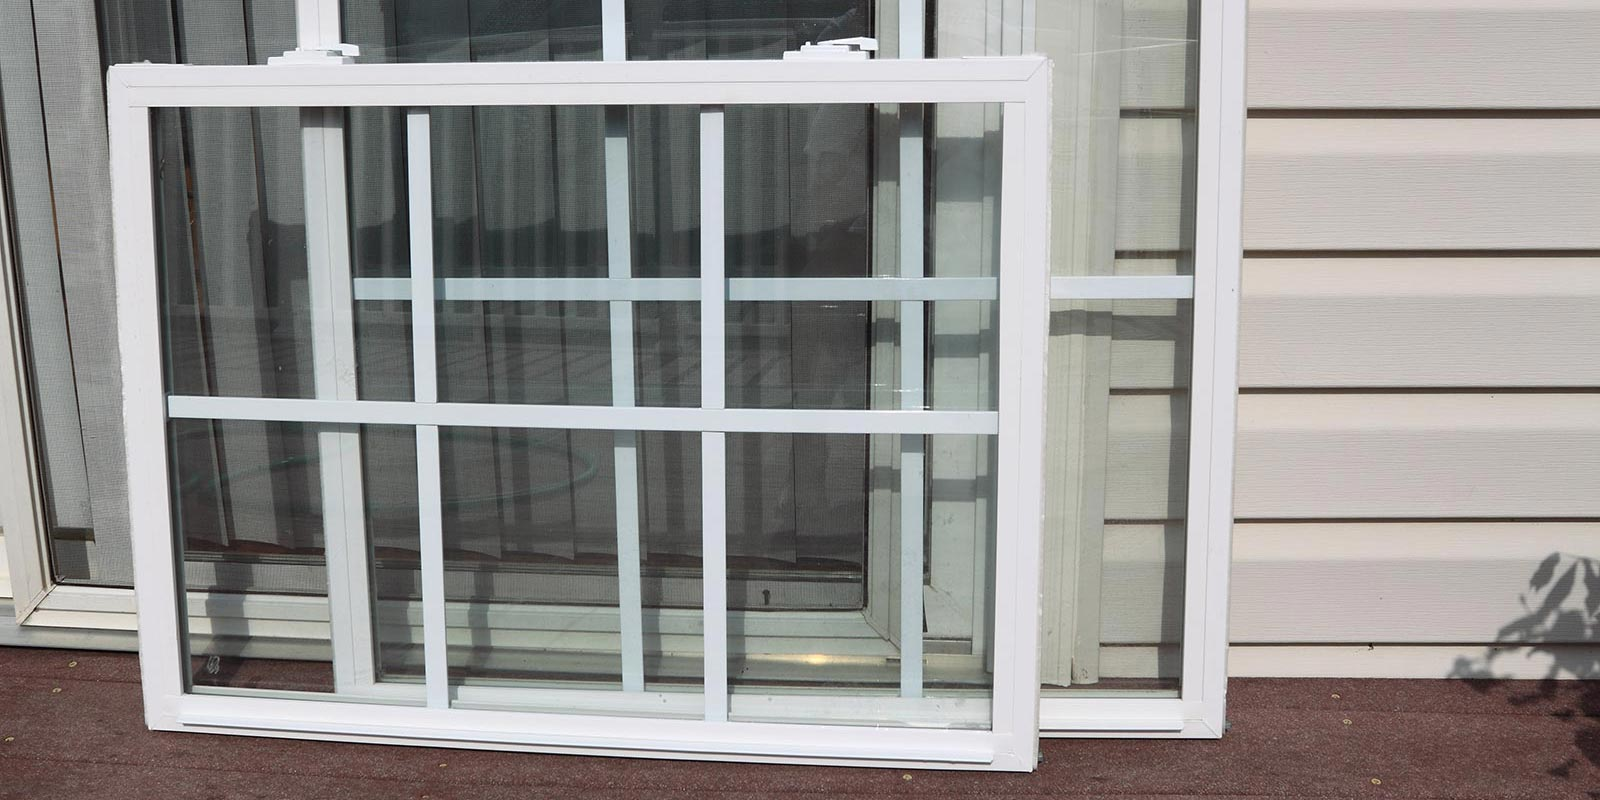 Toronto Doors & Windows | Vinyl Window Replacement, Entry Doors, Exterior Doors & more